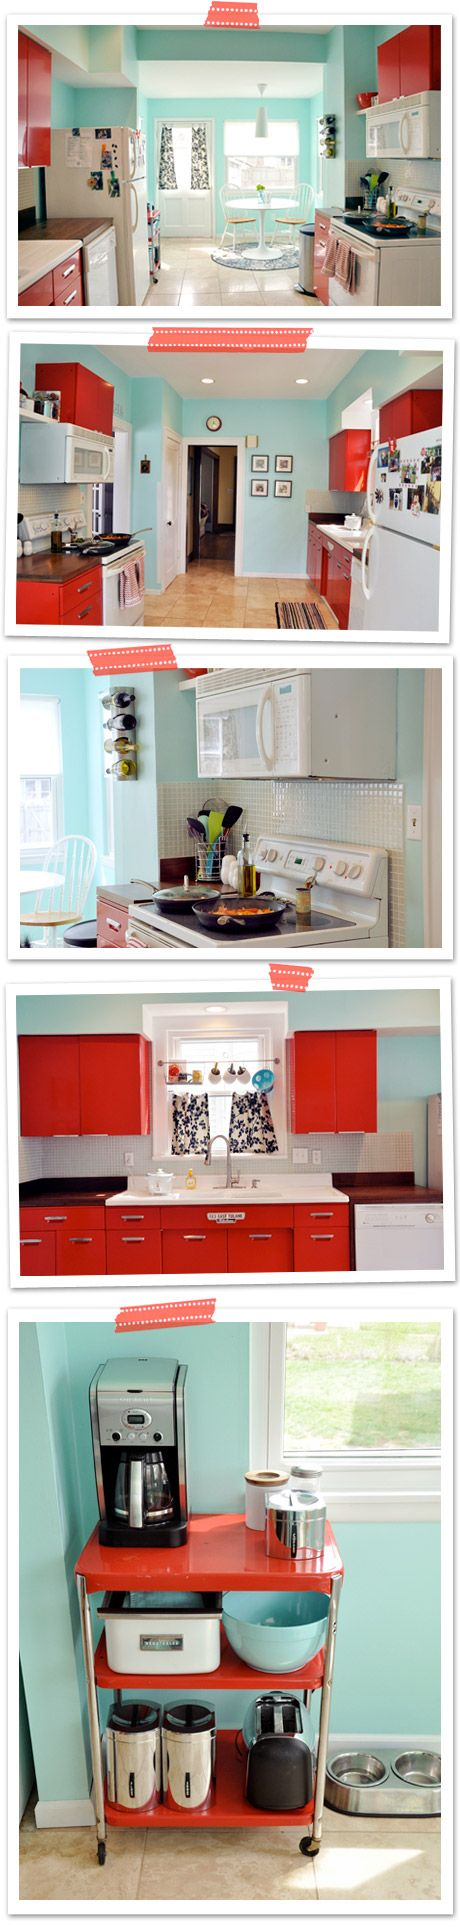 Turquoise kitchen walls like the chair color too decorating - I Love This Color Scheme For A Kitchen Though I Would Do A Majority Of